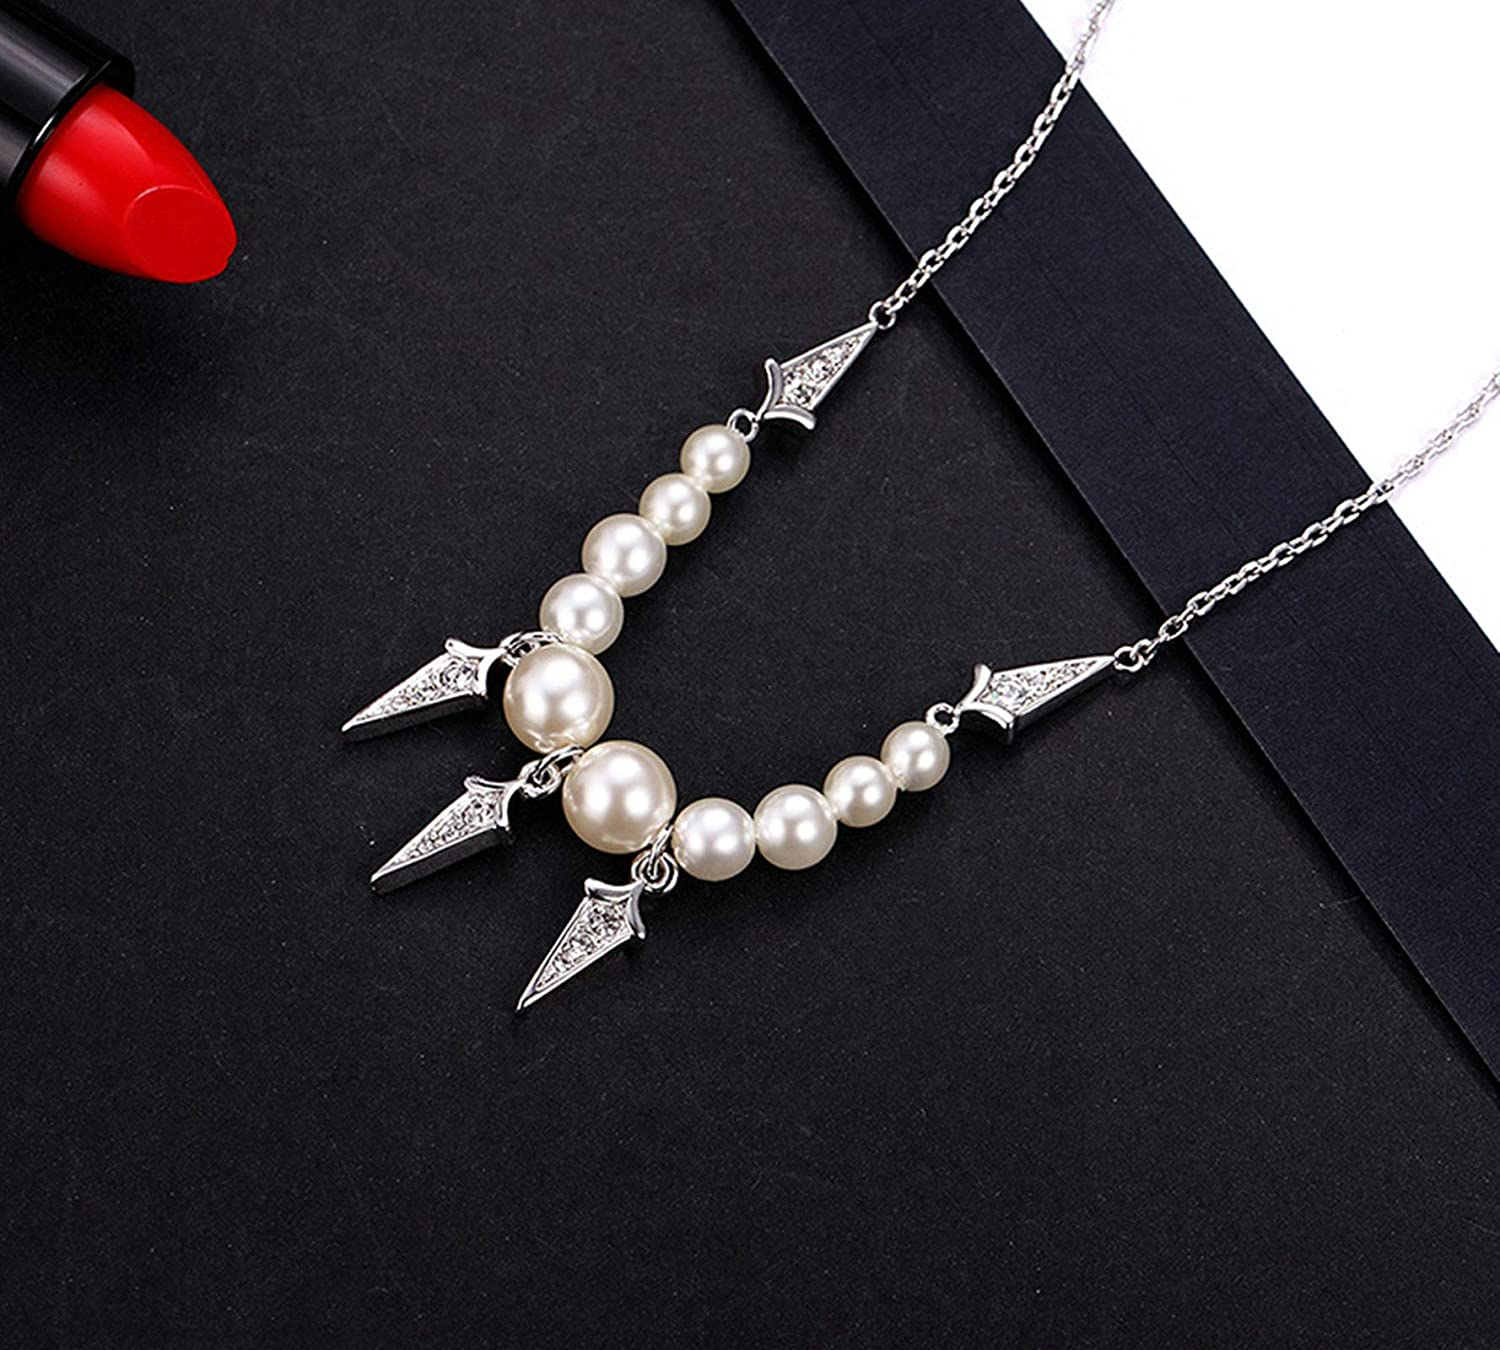 ANAZOZ Necklace for Women Silver Plated Cubic Zirconia Triangle Pendant Necklaces